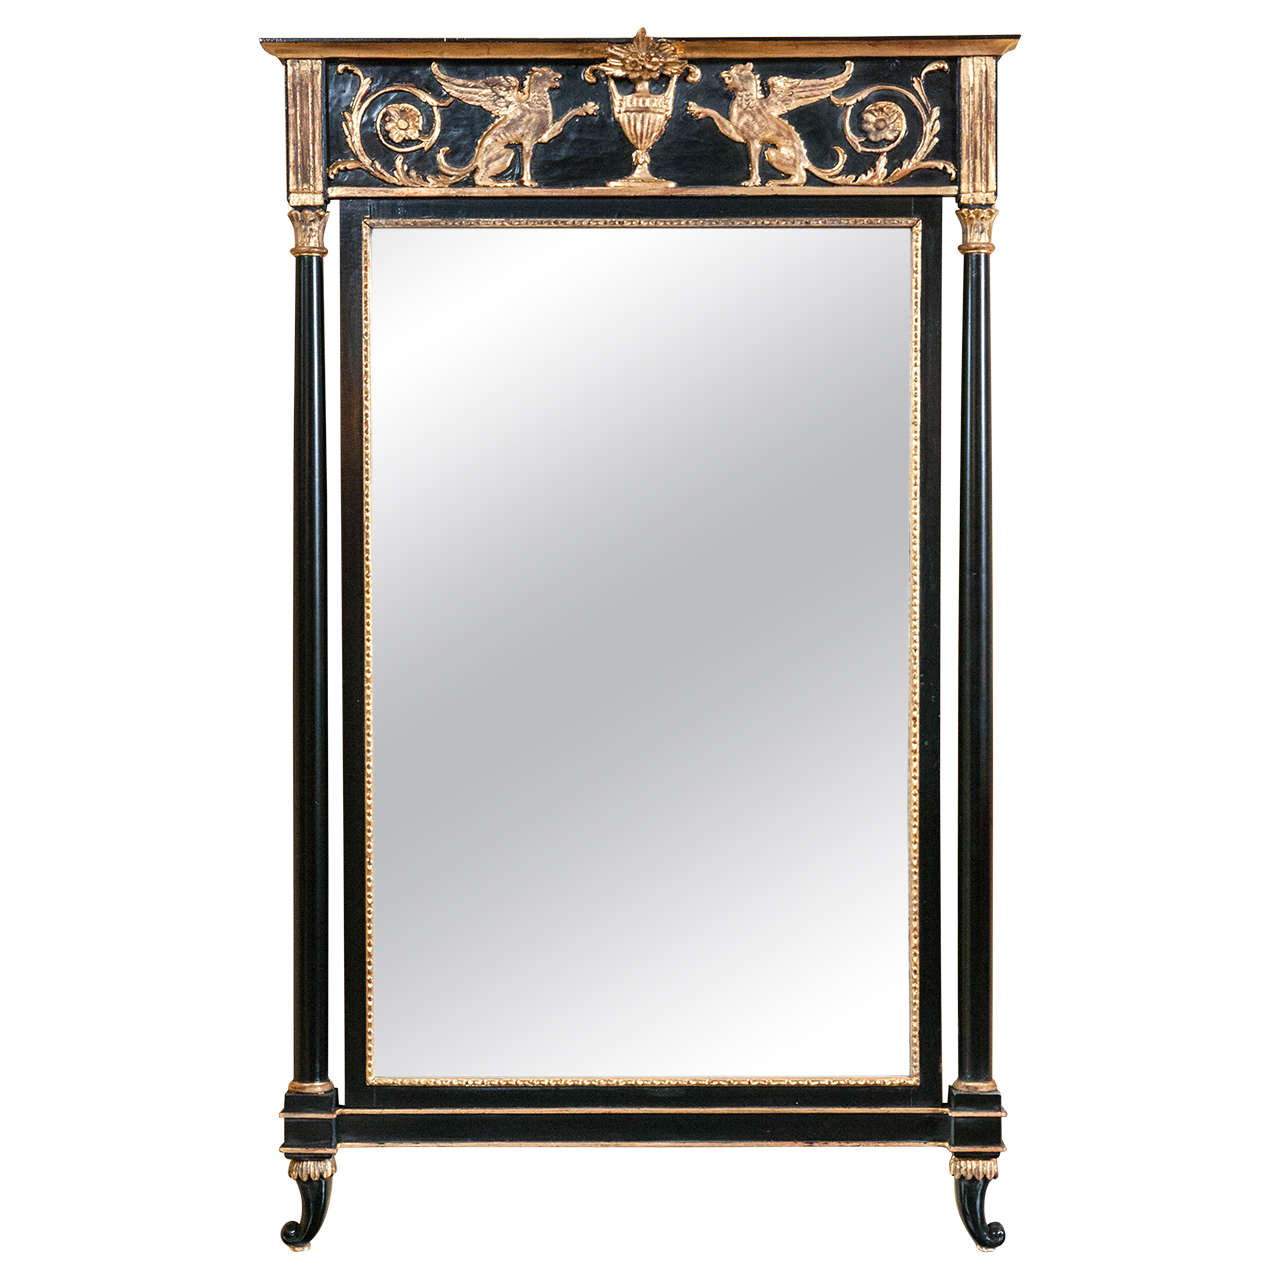 Design glass mirror greenwich ct all new 1 for Mirror glass design